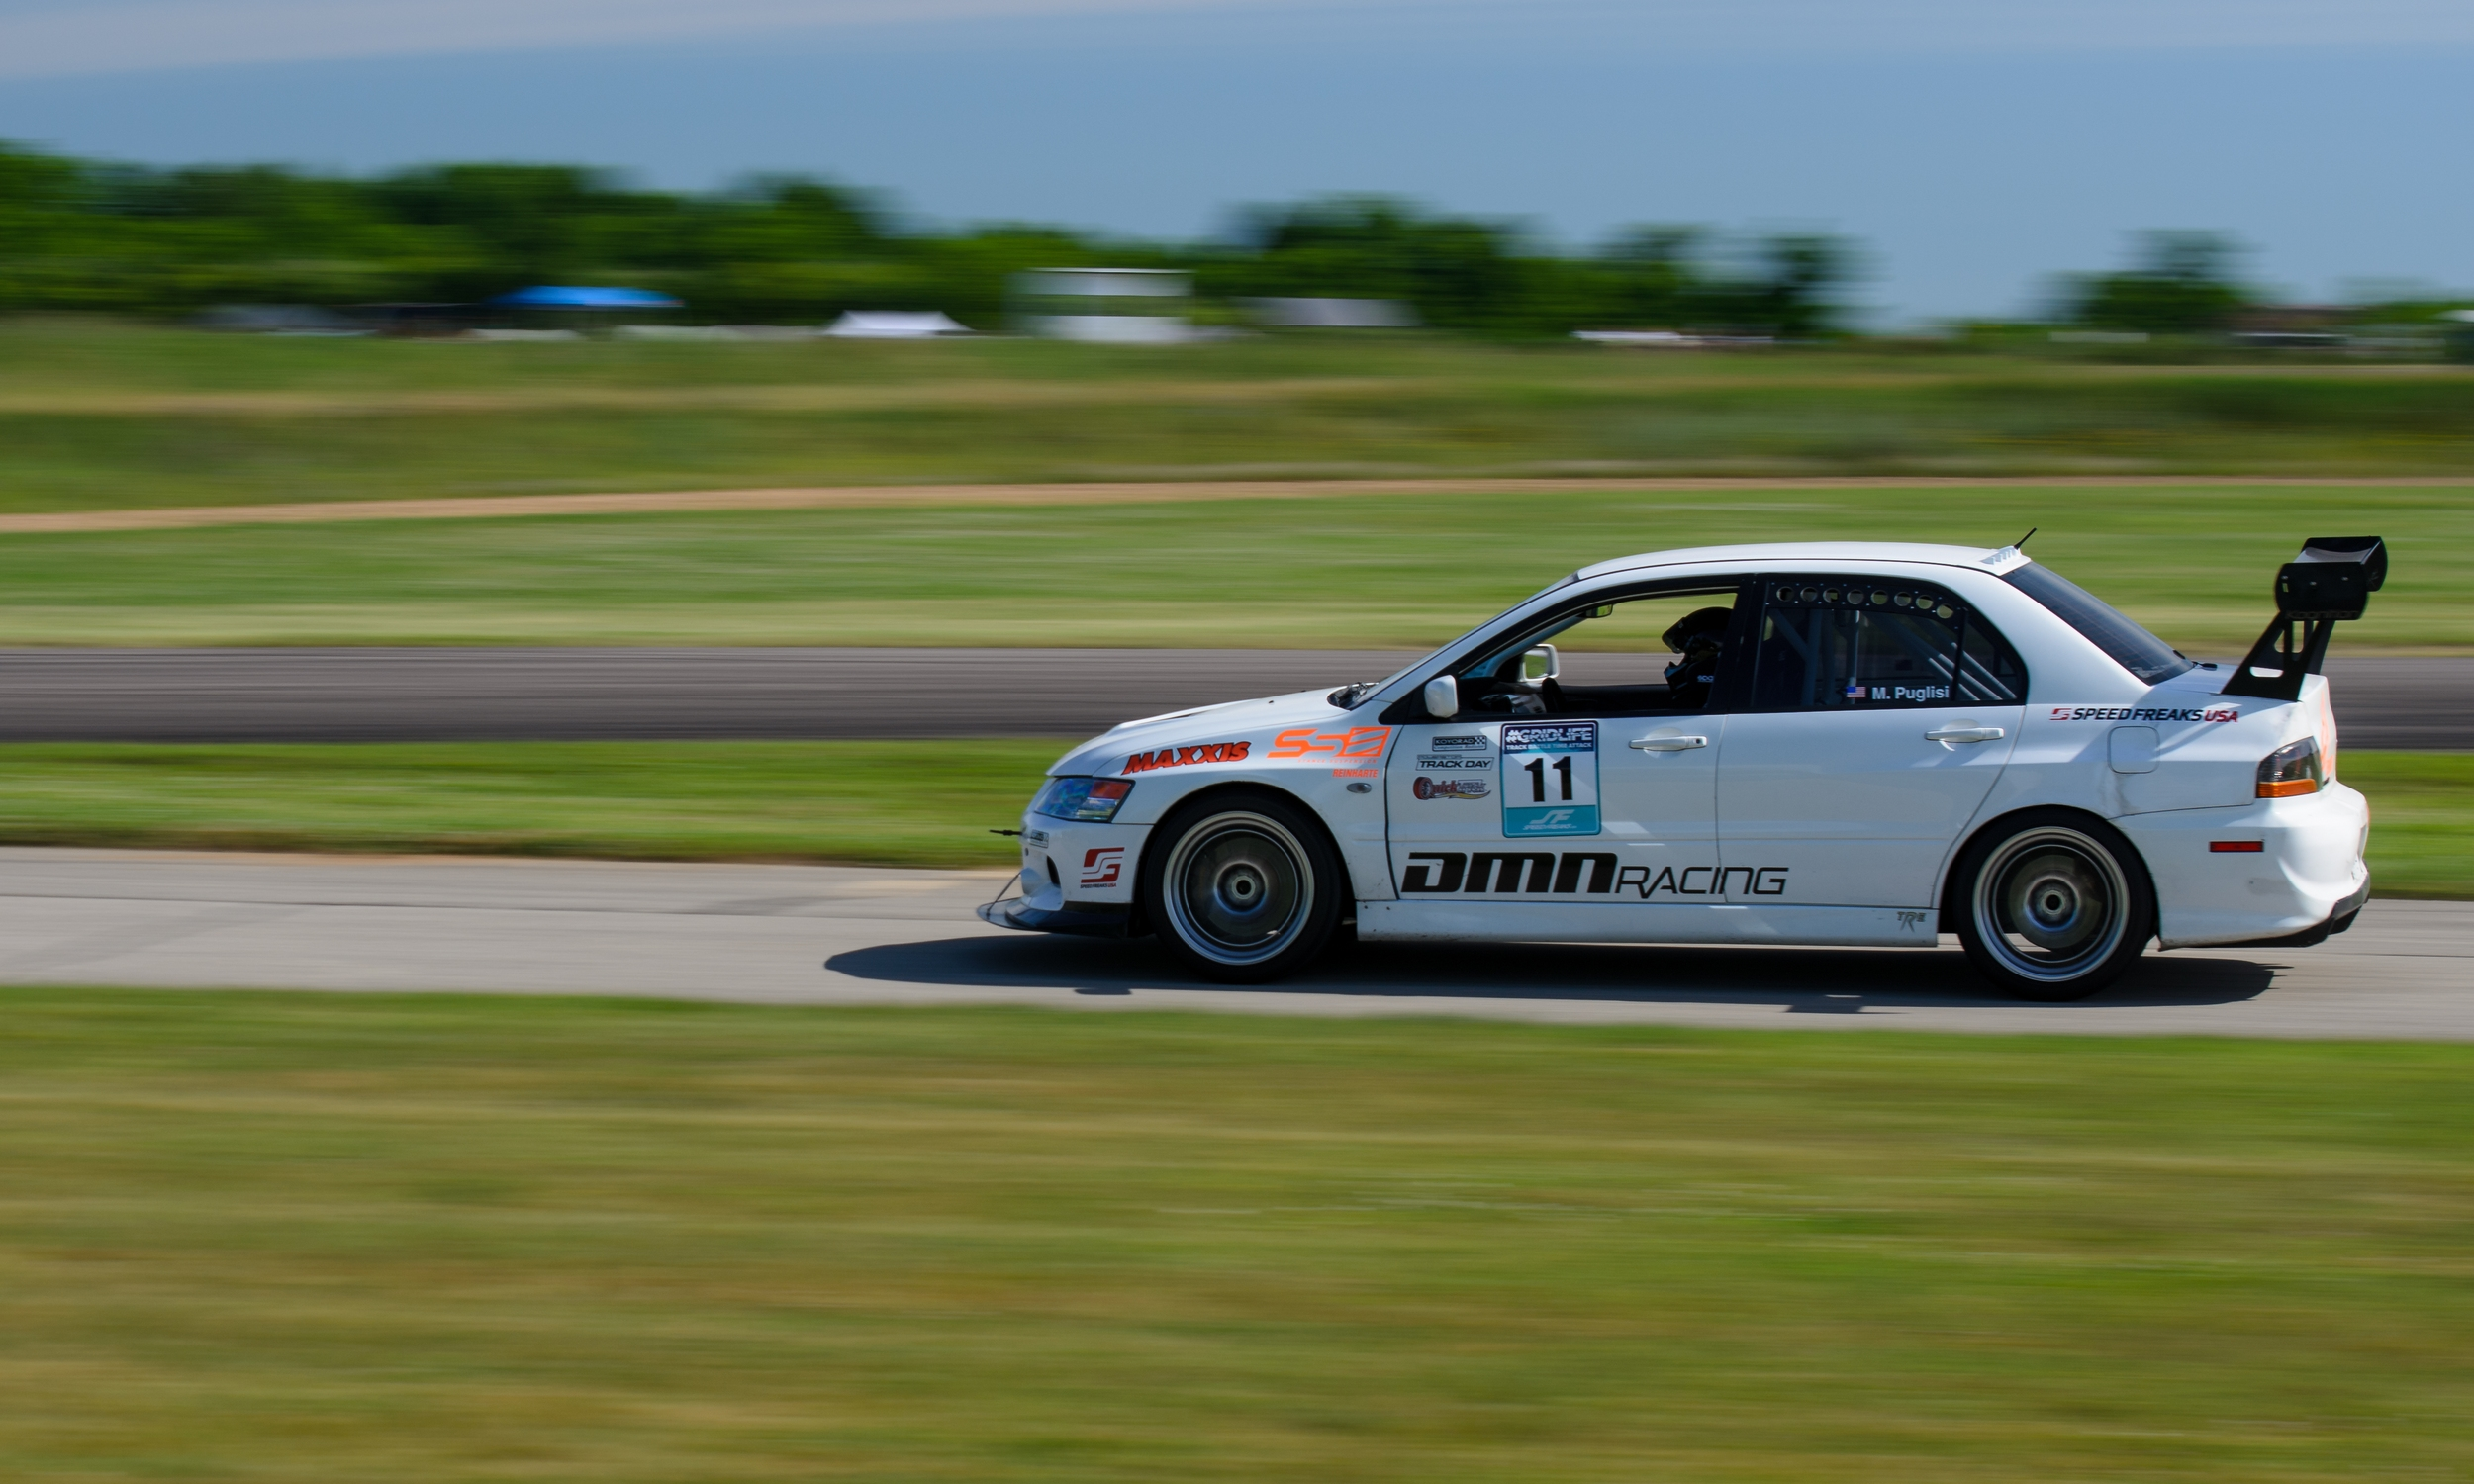 DMN Racing's Evo piloted by Michael, took Second in Trackt Modified overall with a blazing time of 1:38.420.